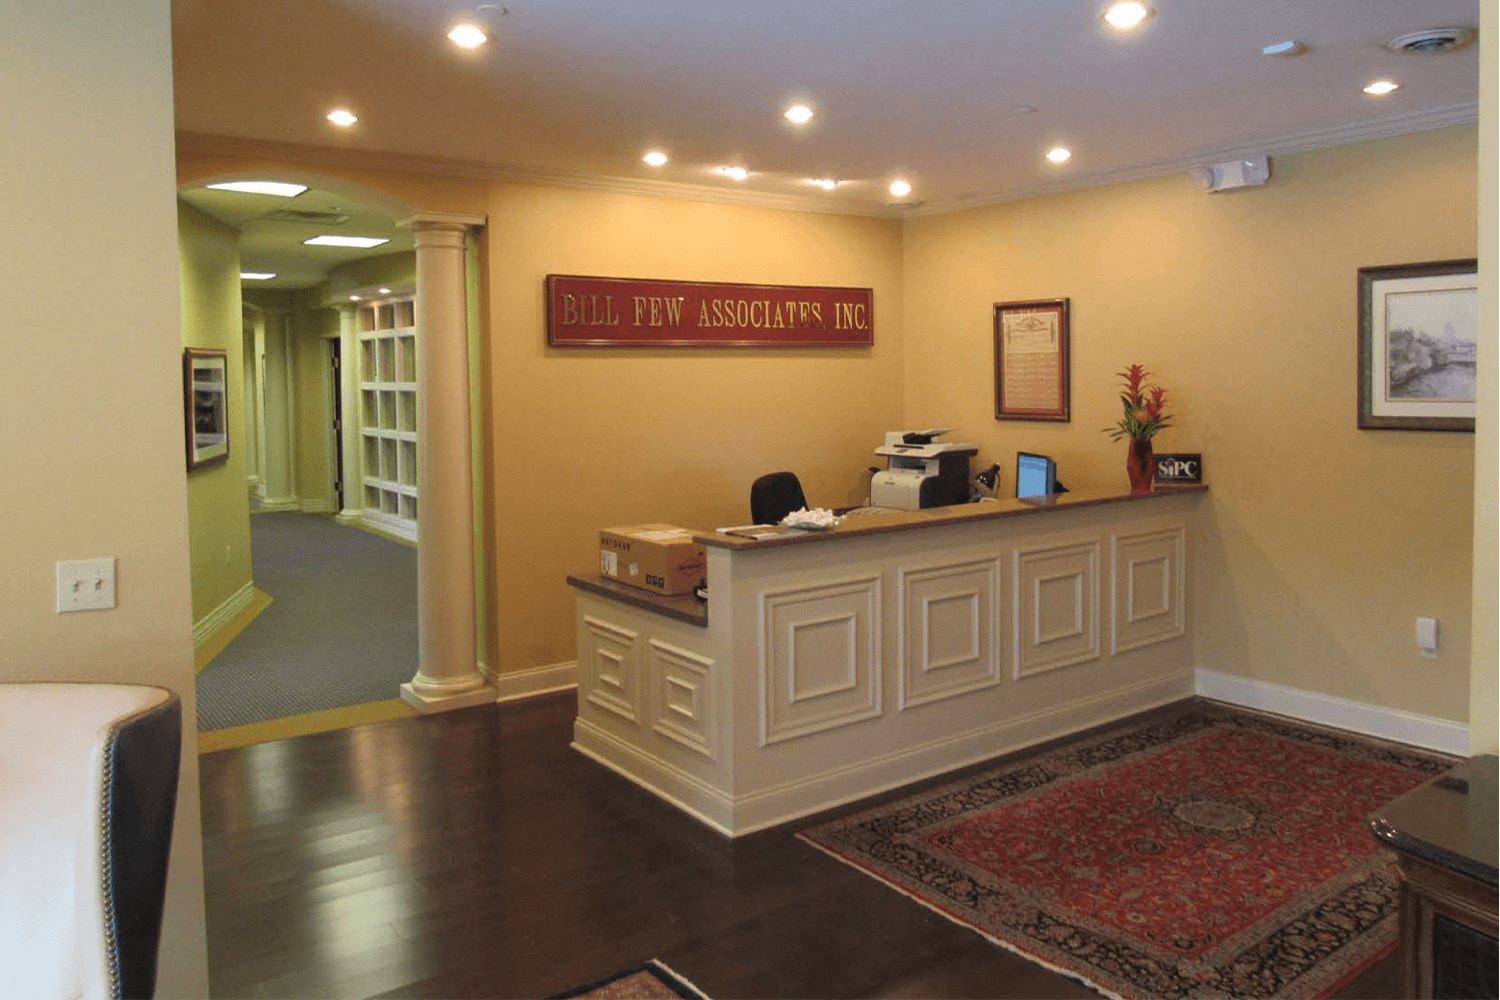 lobby/reception area with a decorative front desk